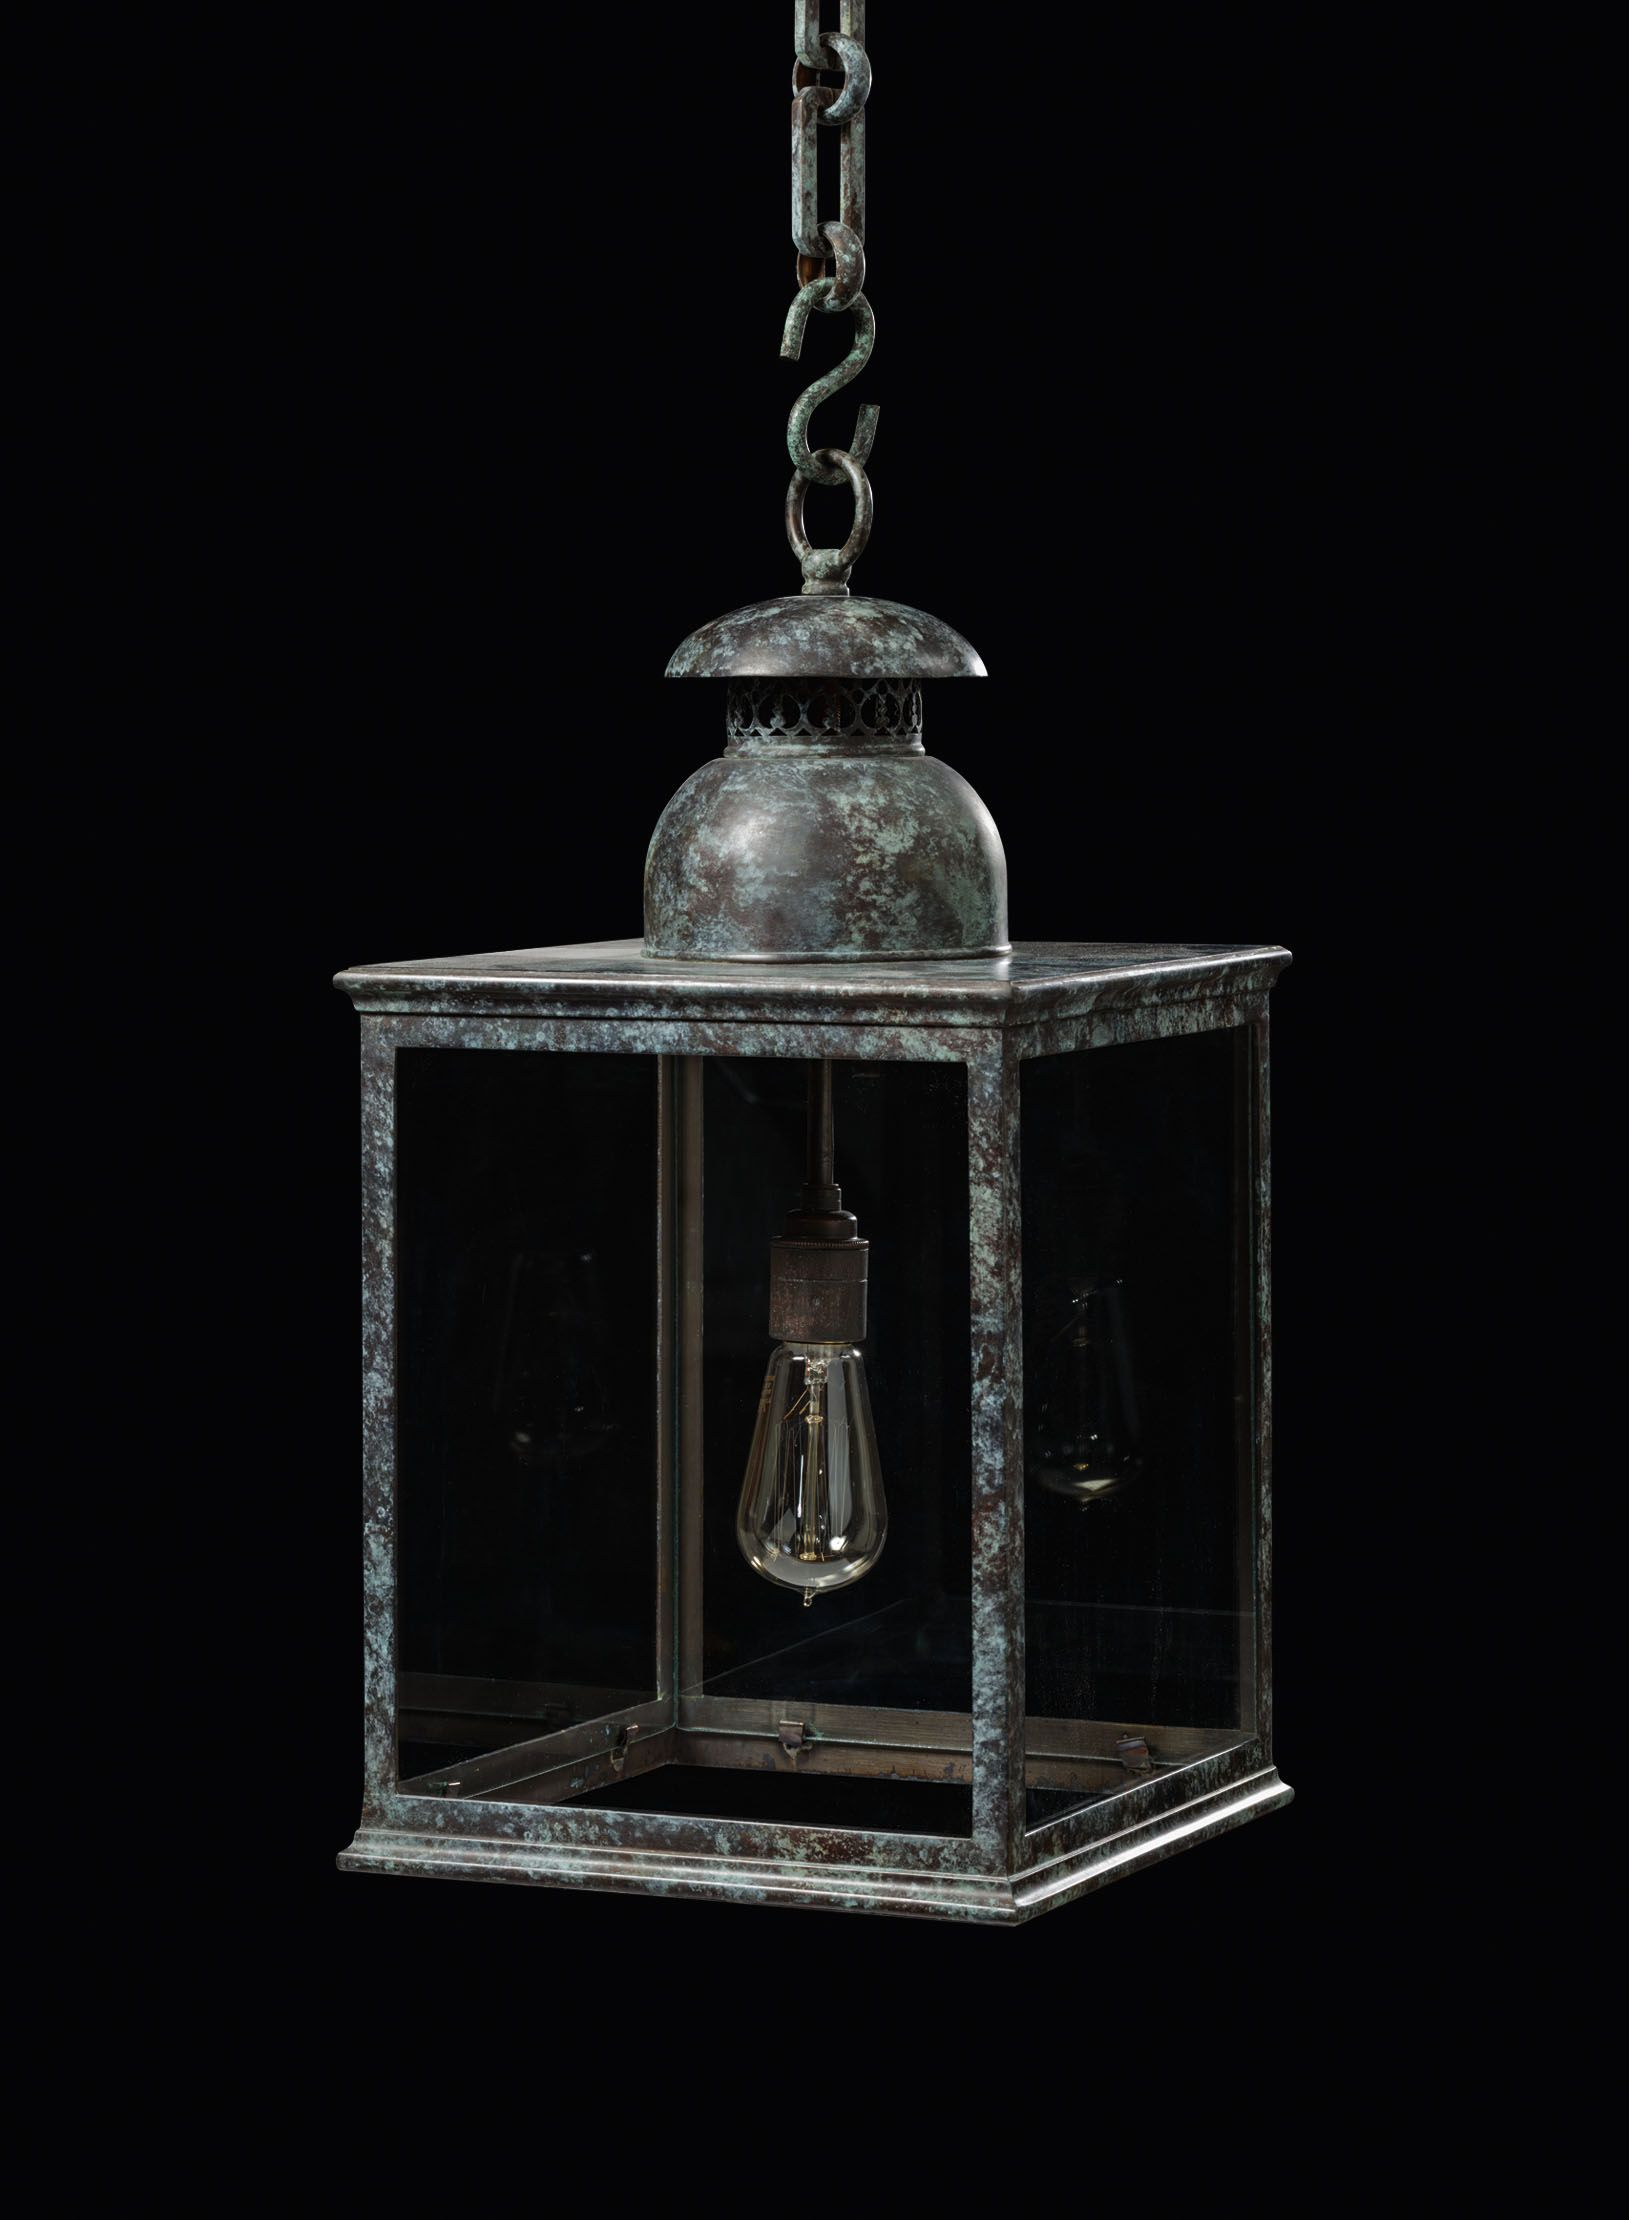 Reproduction Antique Lighting Hanging Lanterns Wall